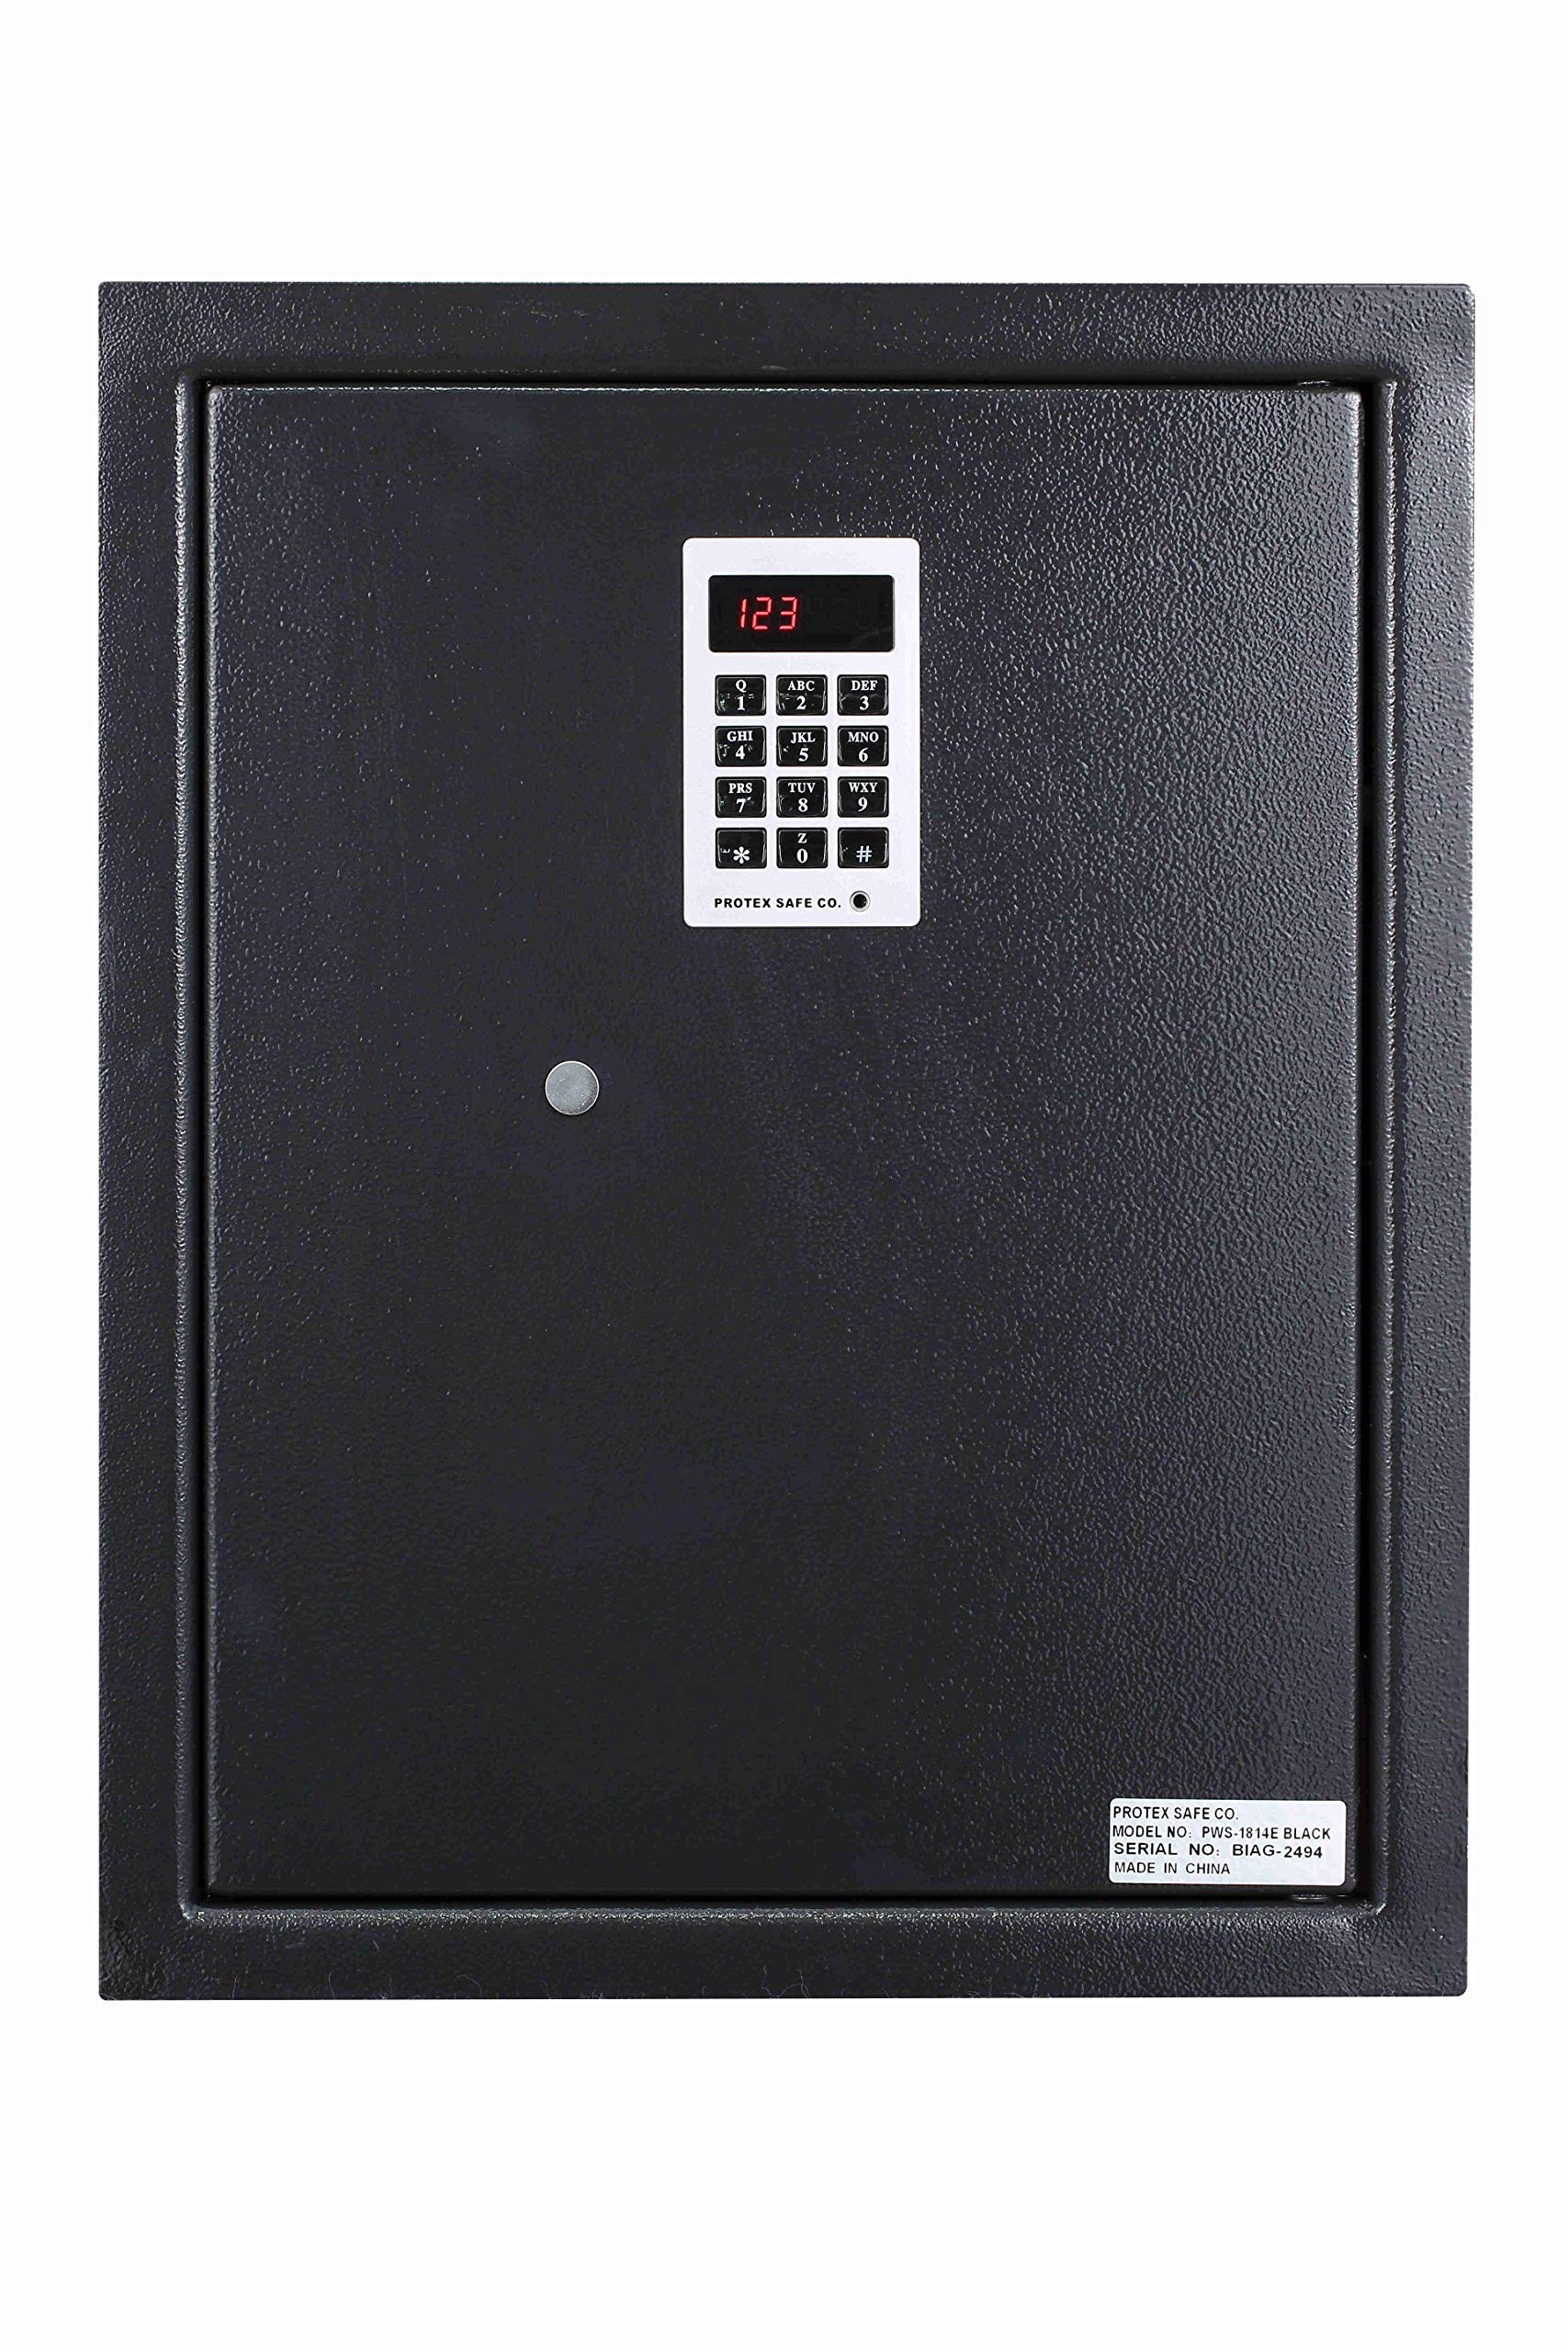 Protex PWS-1814E Electronic Keypad Wall Safe, 5.25'', Black by Protex